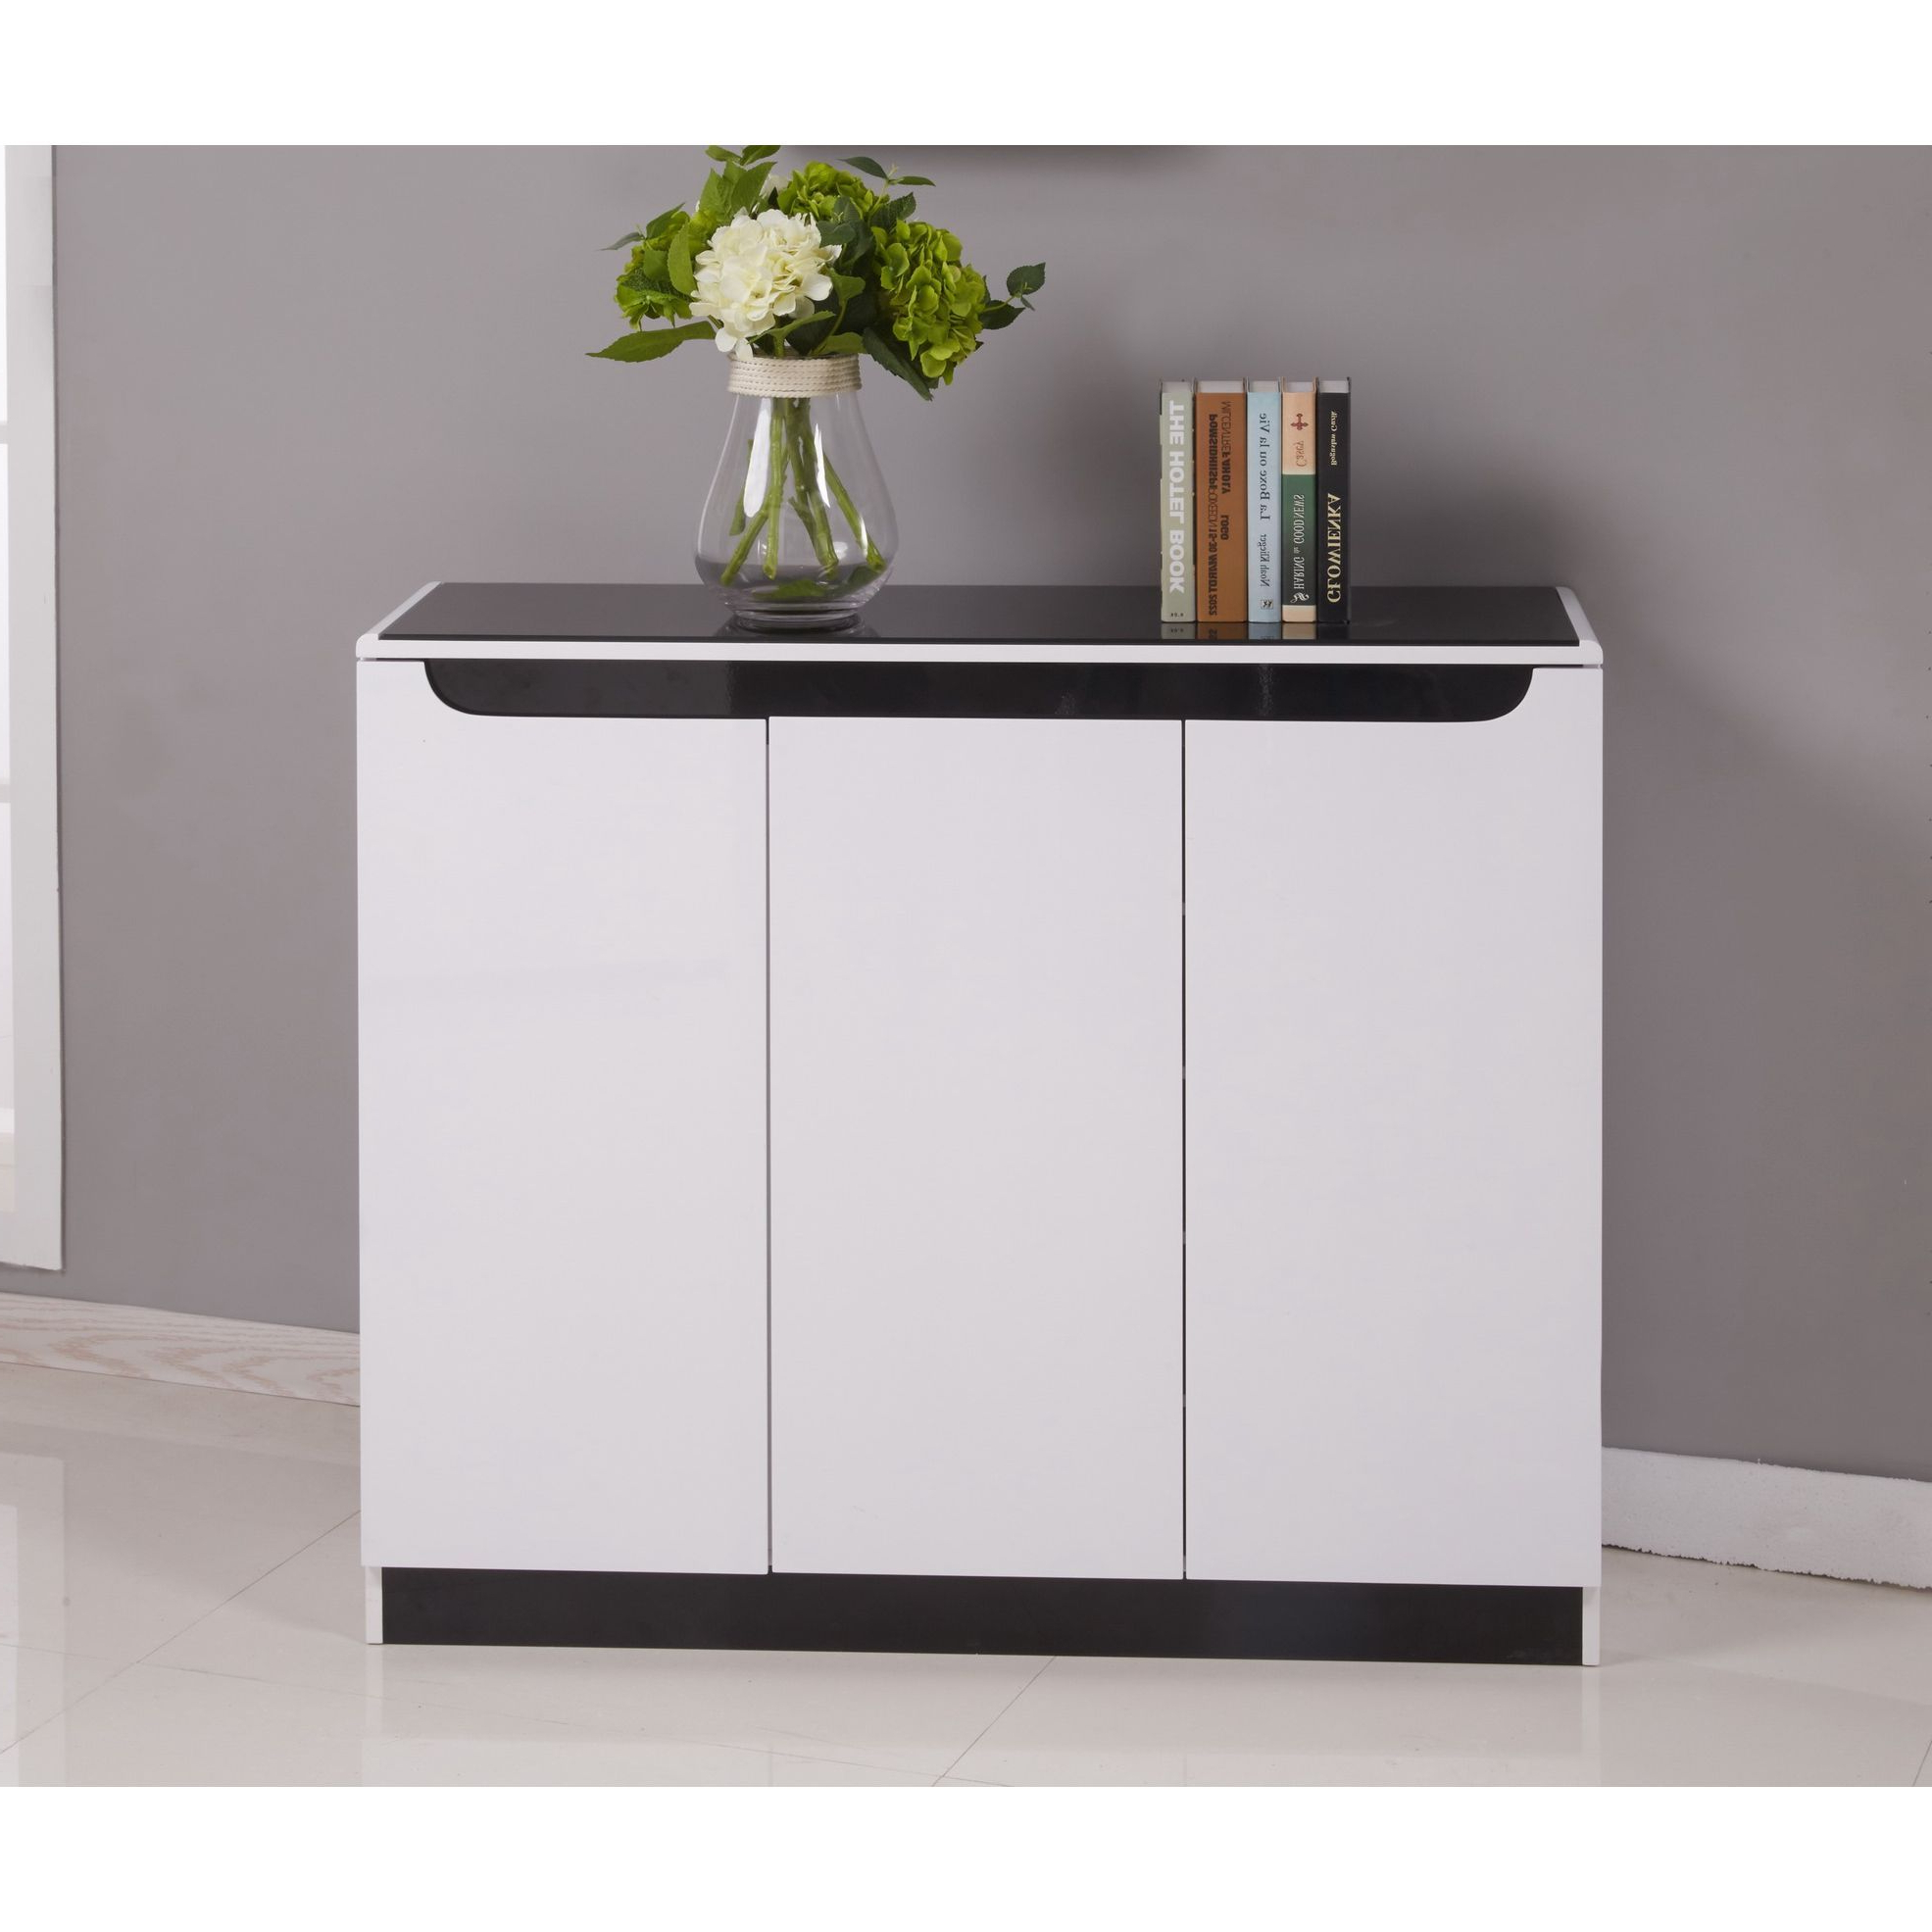 Widely Used Maestro Shoe Cabinet – White High Gloss W/ Black Glass Top (View 20 of 20)